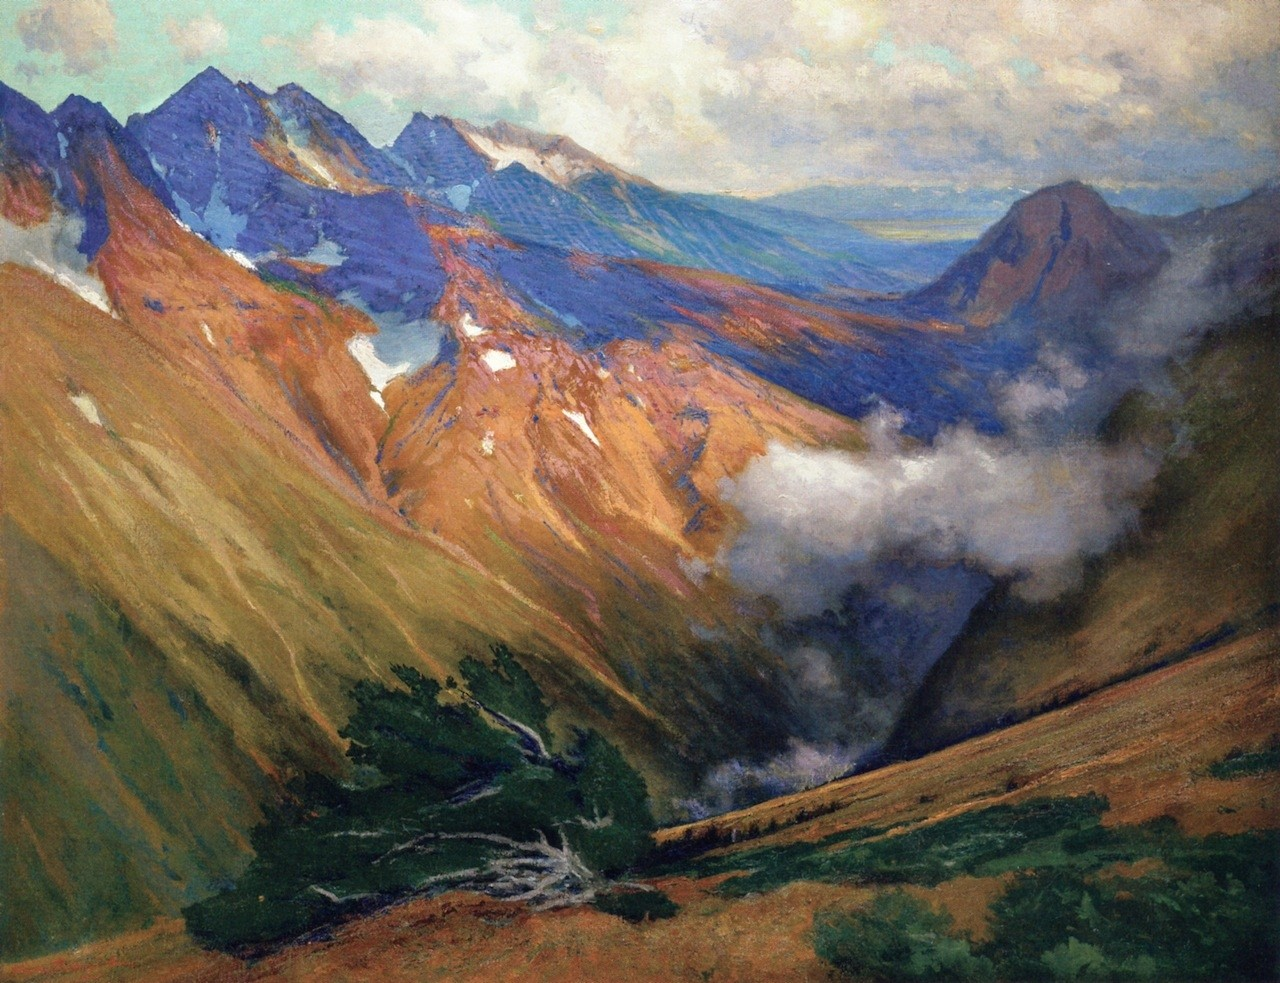 Kate miterko charles partridge adams xx in the vicinity of ouray xx private collection